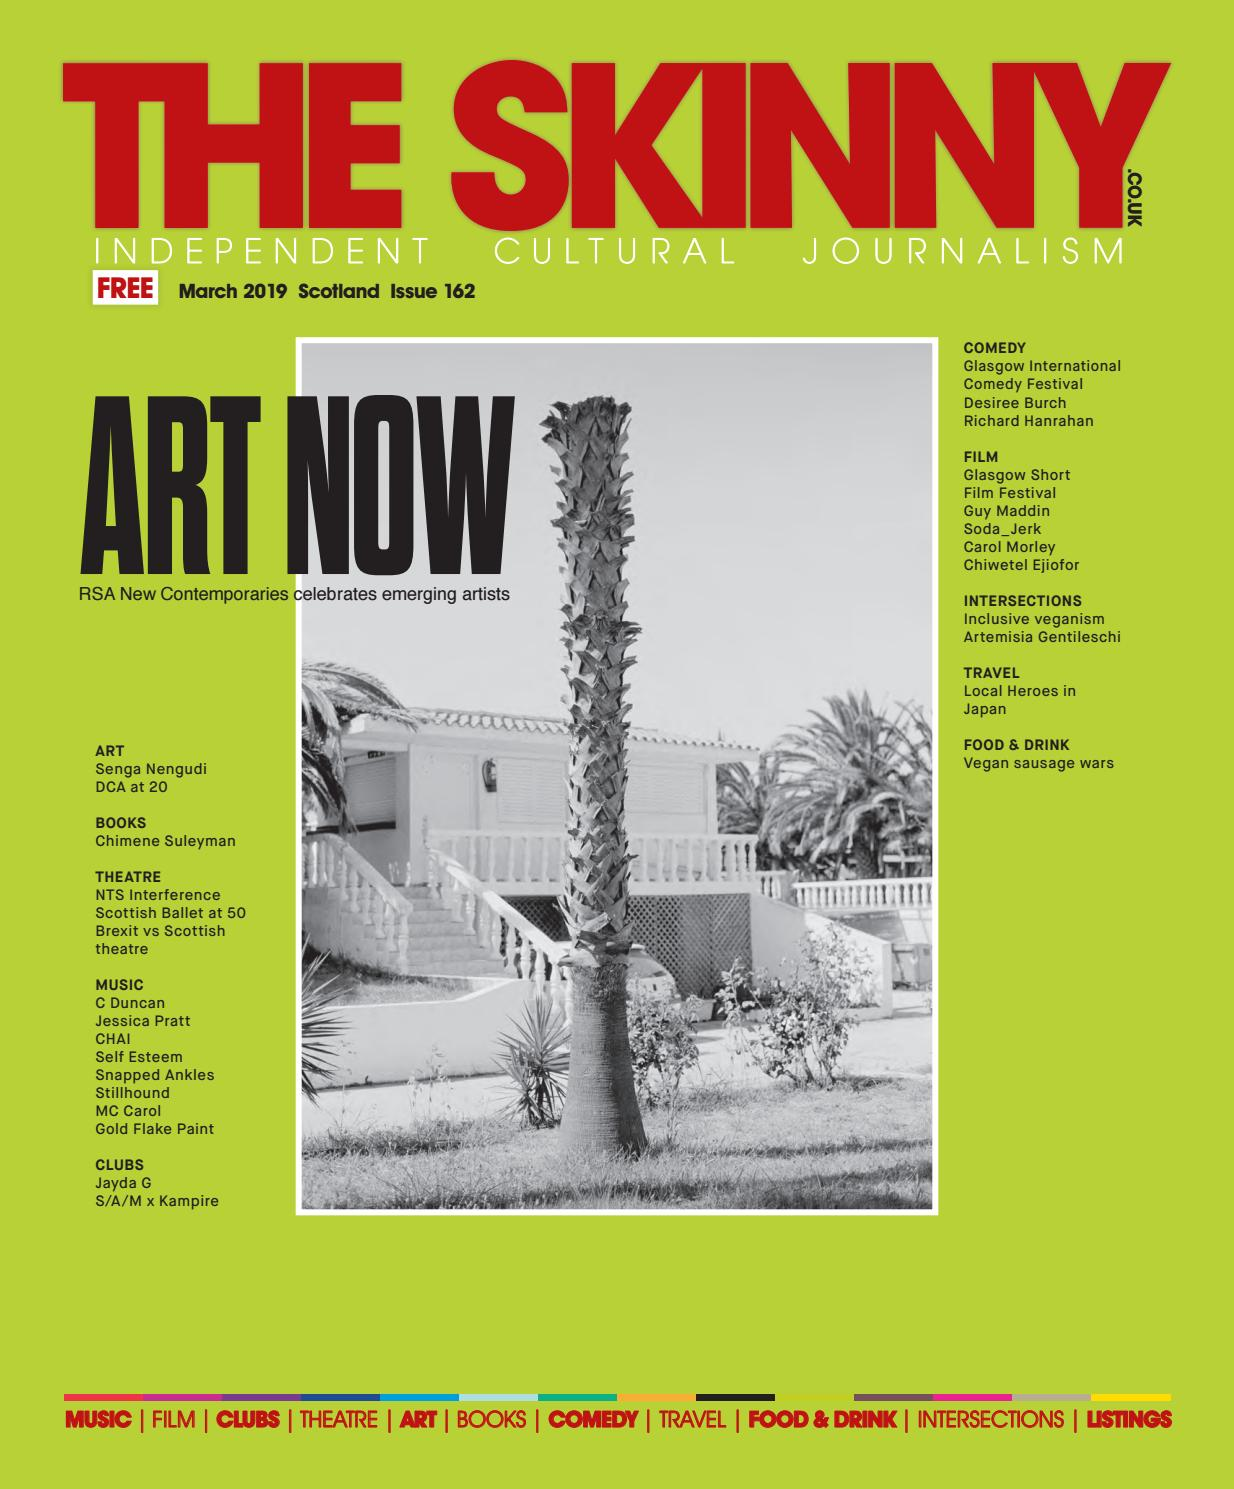 a77416e2237bf The Skinny March 2019 by The Skinny - issuu